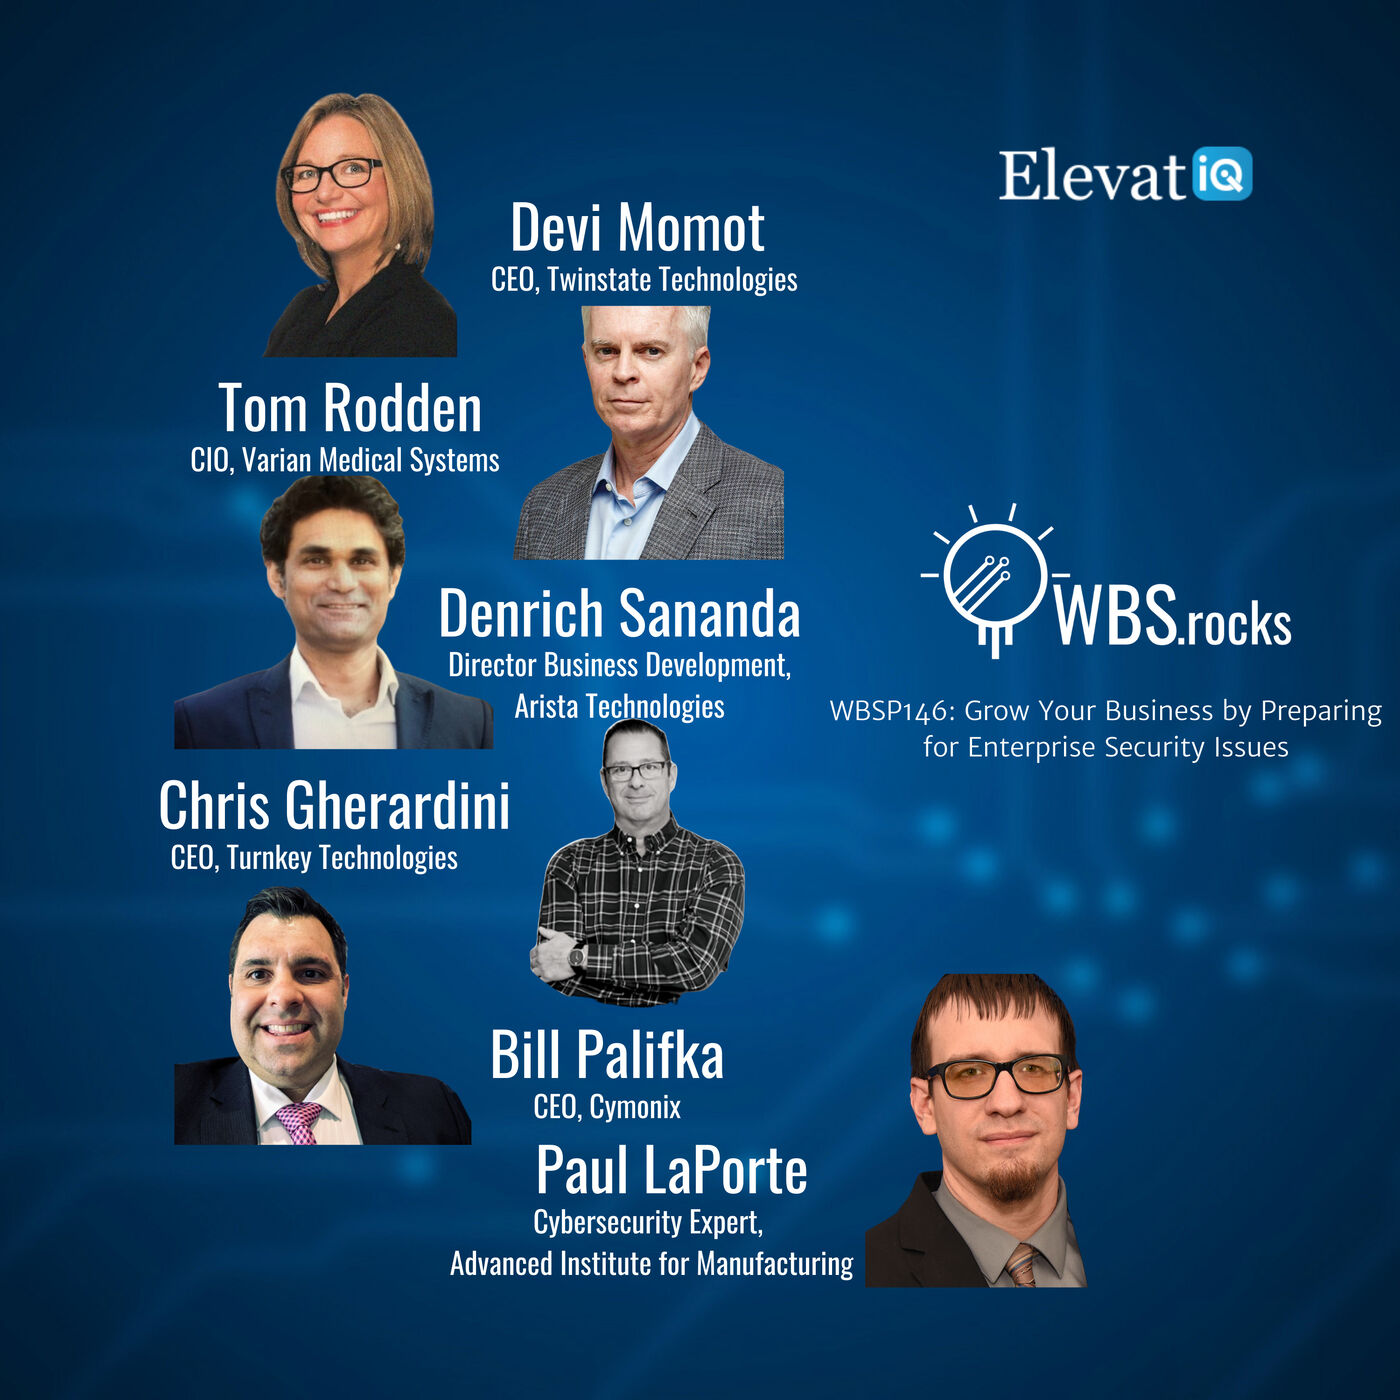 WBSP146: Grow Your Business by Preparing for Enterprise Security Issues, a Live Interview w/ a Panel of Experts